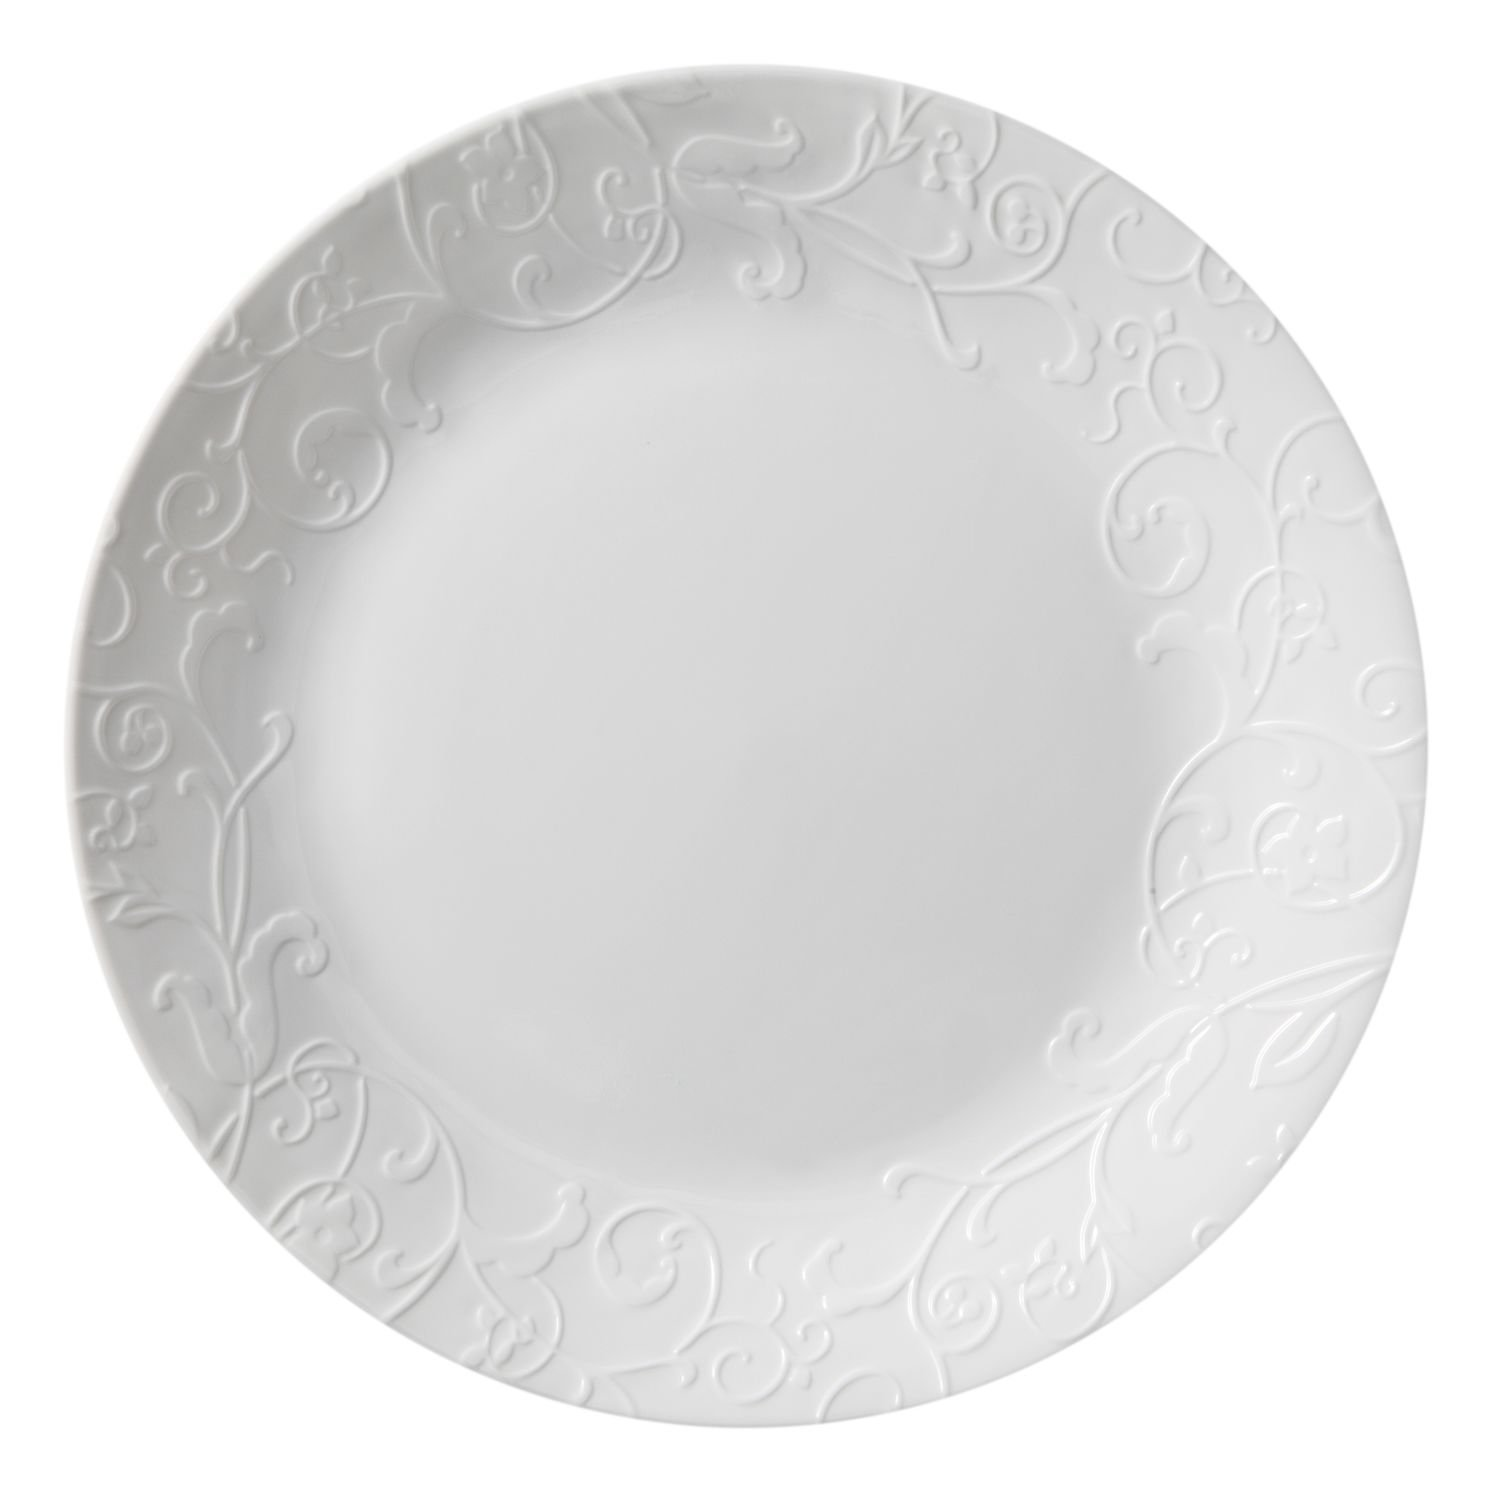 Corelle Embossed Bella Faenza 10.25'' Dinner Plate (Set of 8)